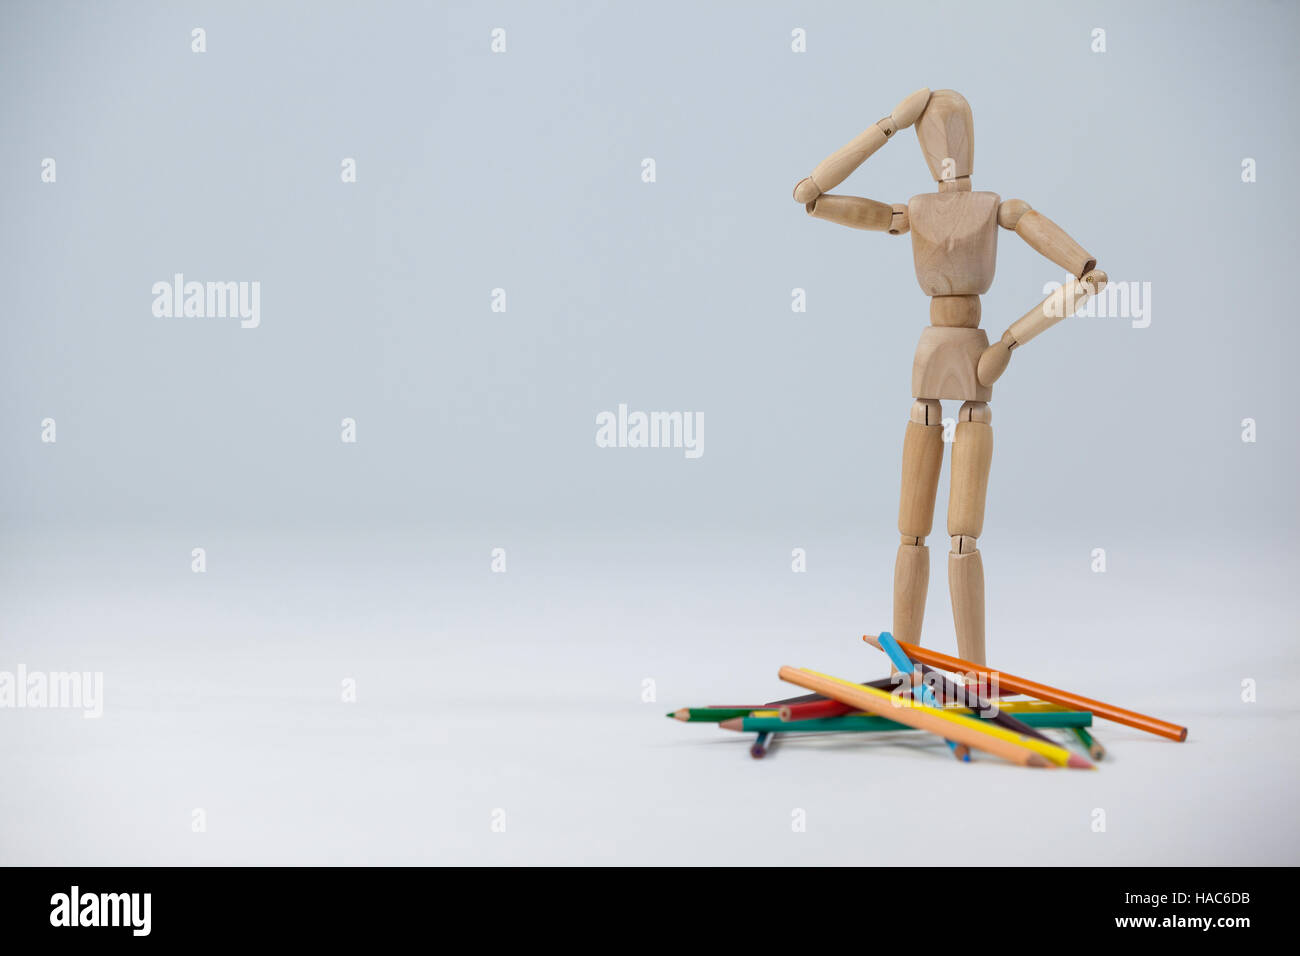 Confused wooden figurine standing near a heap of color pencils - Stock Image